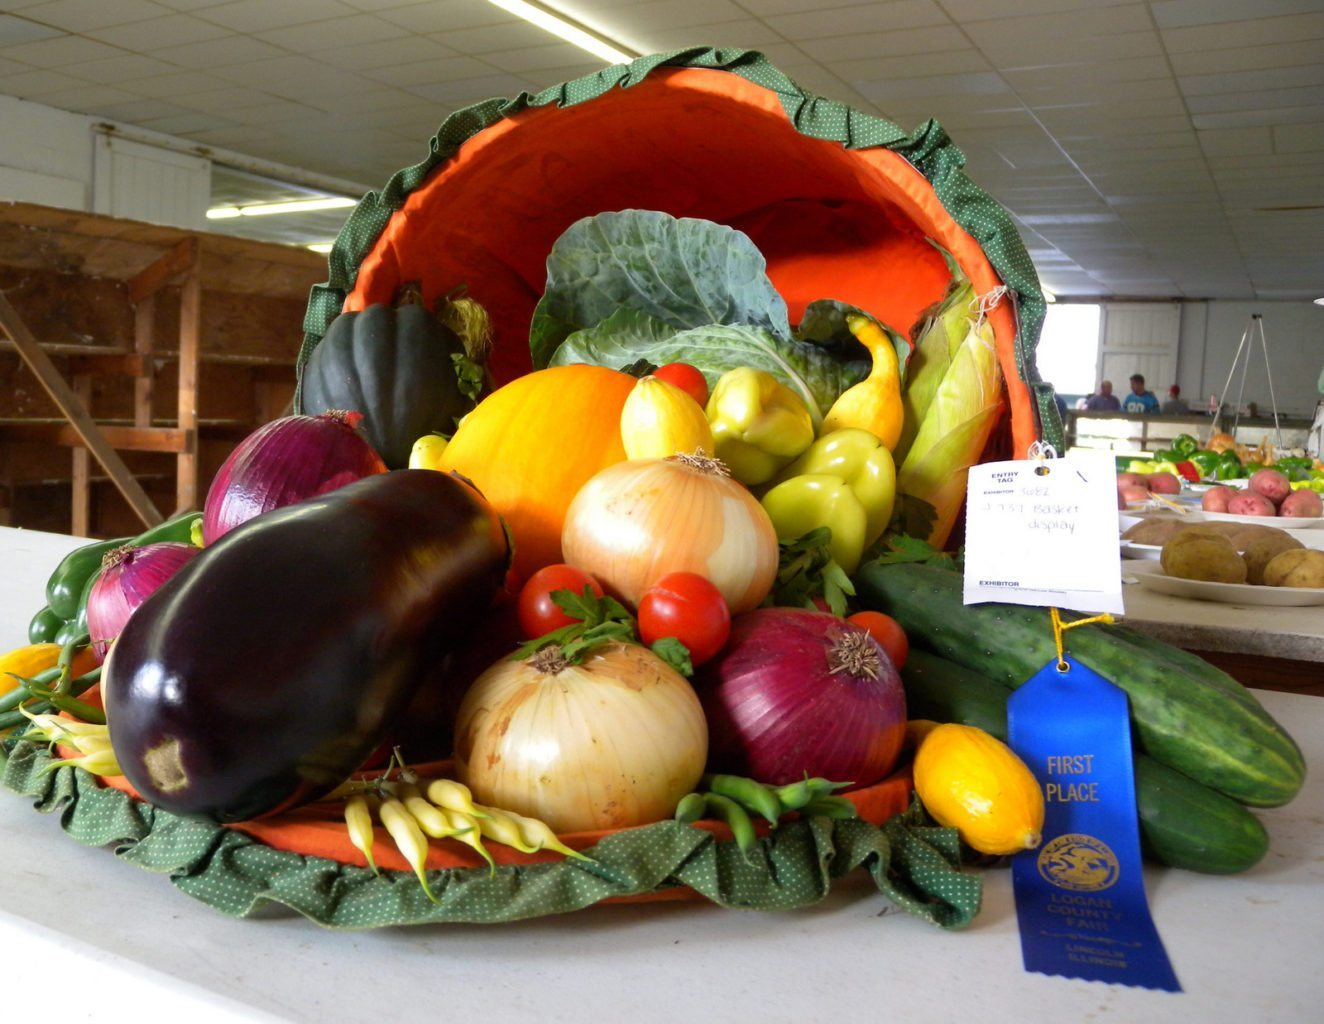 Image: a cornucopia basket of produce